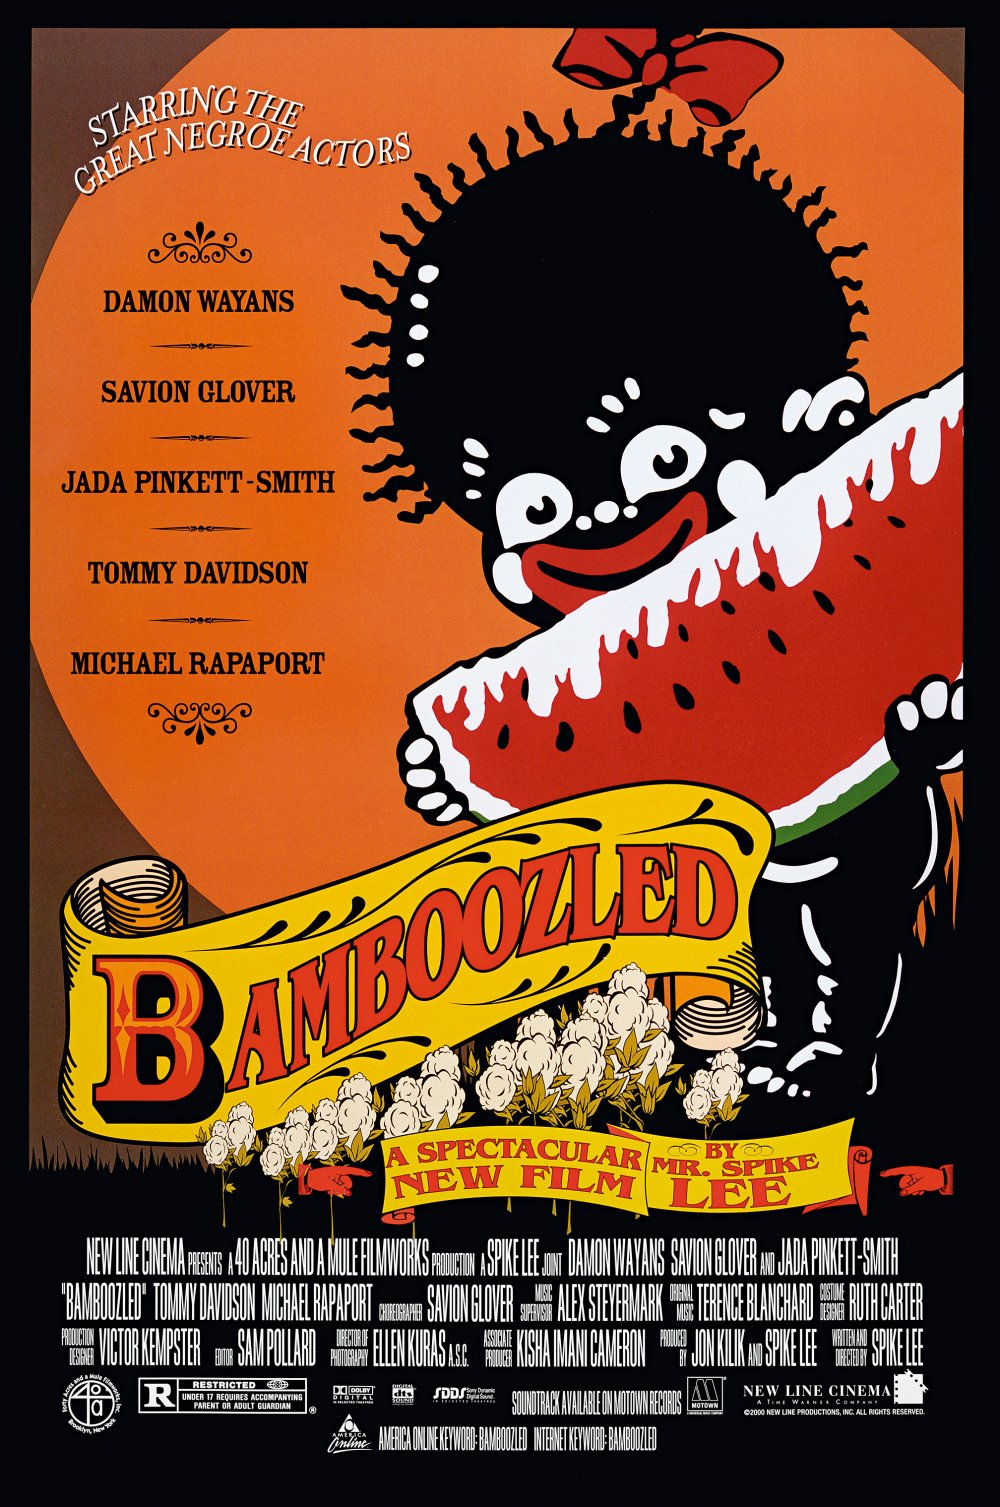 Just as Spike Lee's Bamboozled (2000) catalogues Hollywood caricatures of black people, so does its poster.